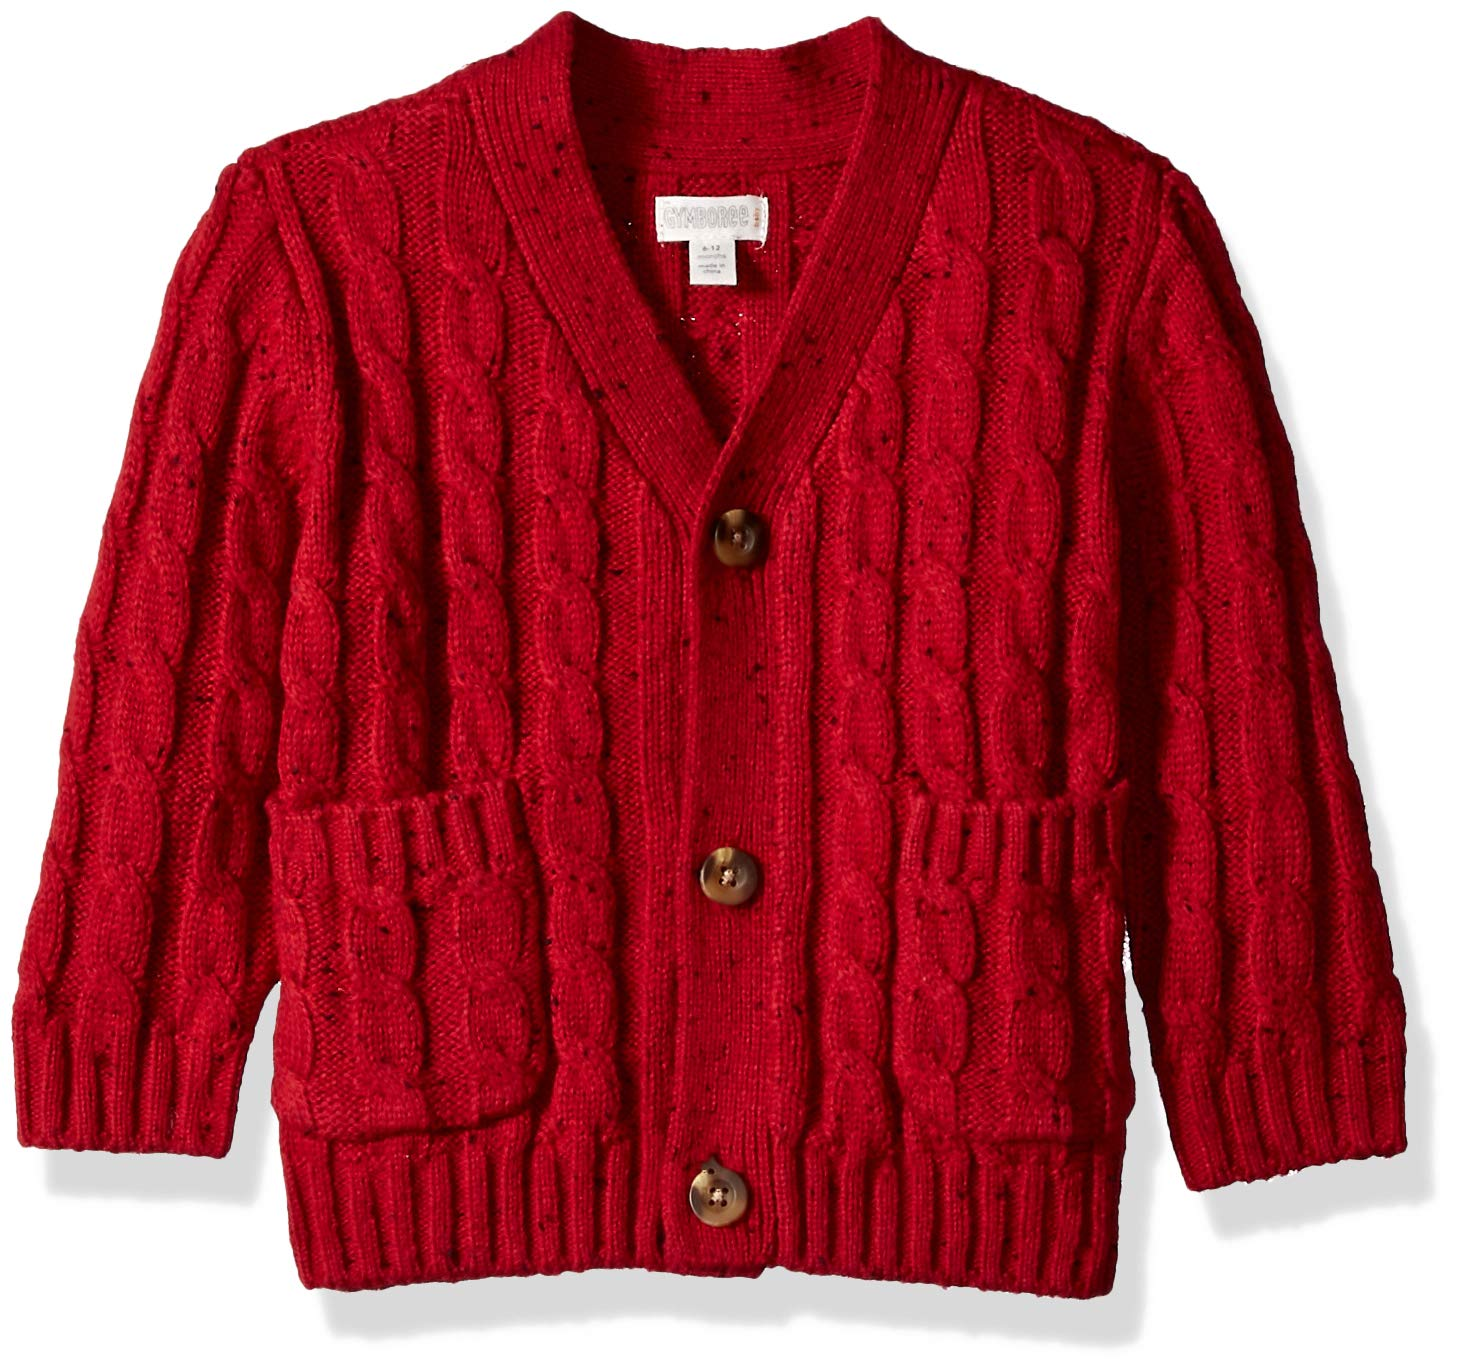 Gymboree Baby Boys Long Sleeve Shawl Collar Cardigan, Rooster red, 3-6 Mo by Gymboree